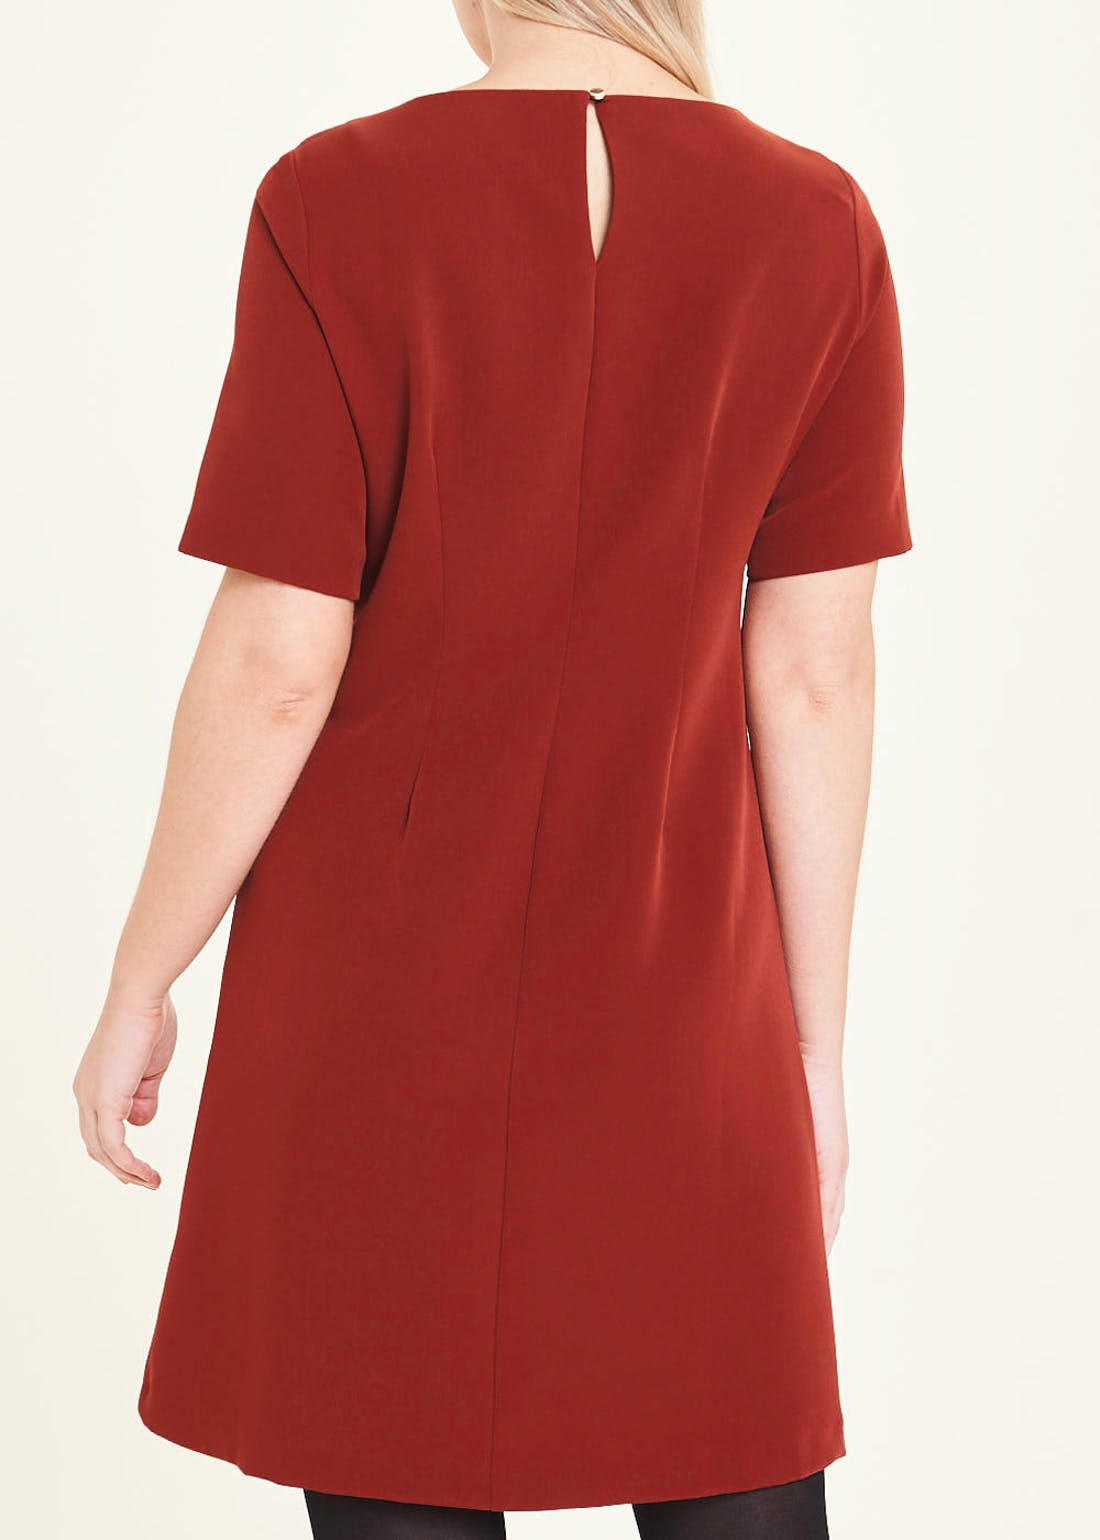 Rust Short Sleeve Pocket Shift Dress